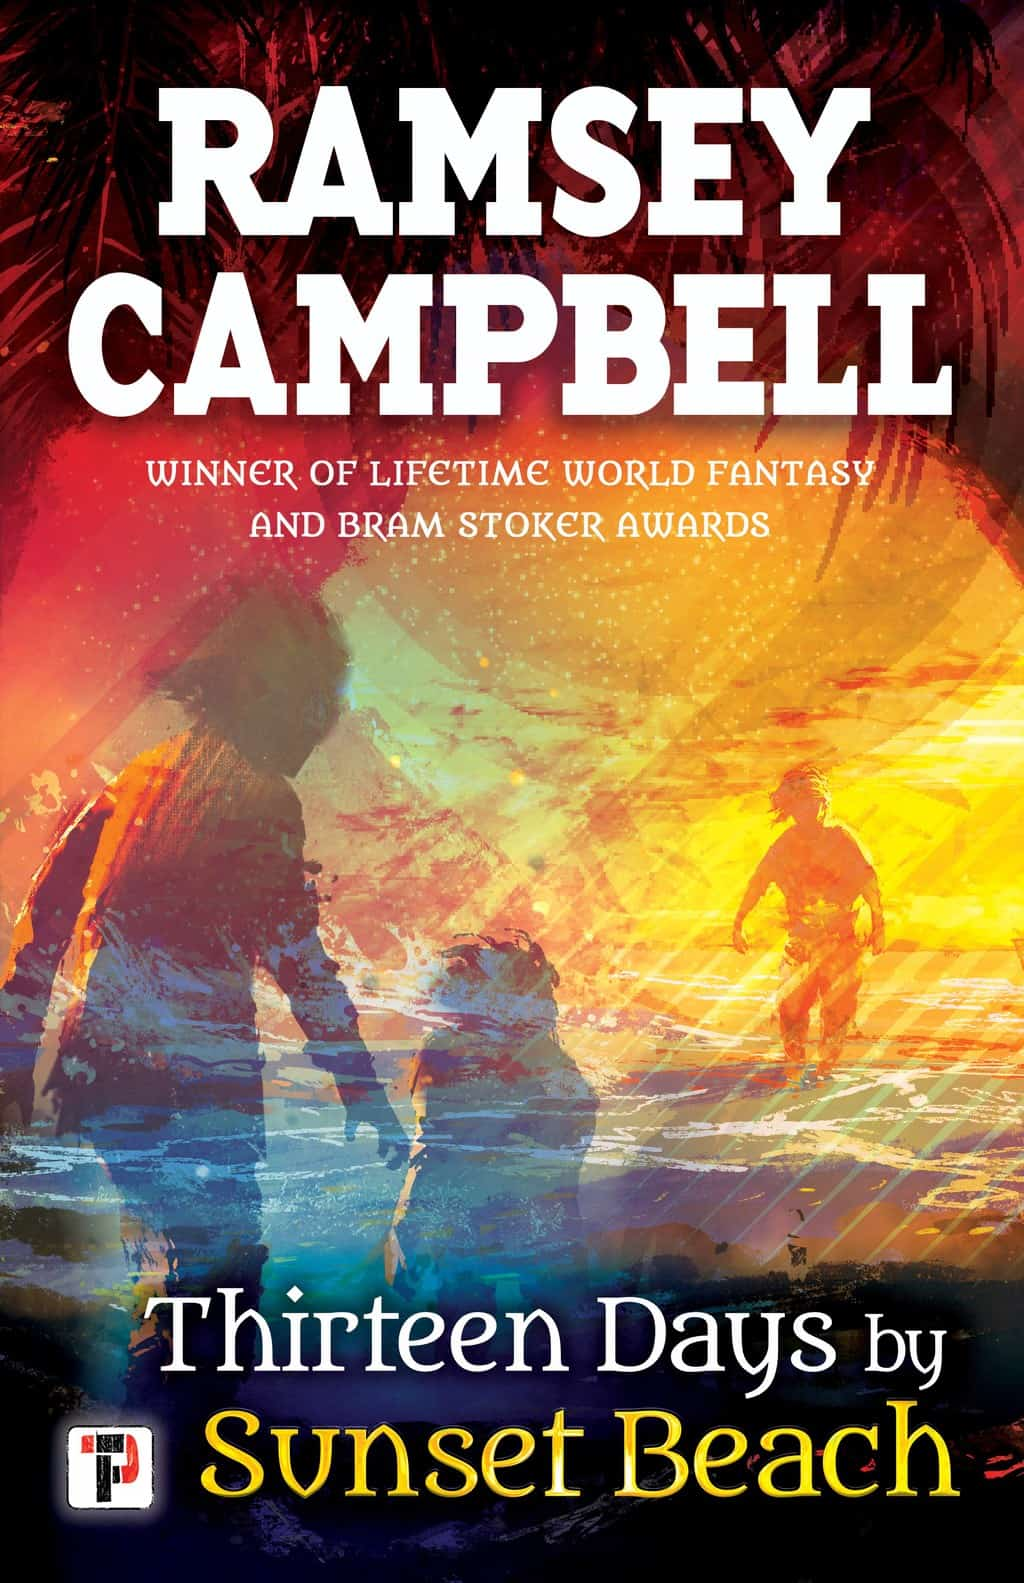 Thirteen Days by Sunset Beach by Ramsey Campbell